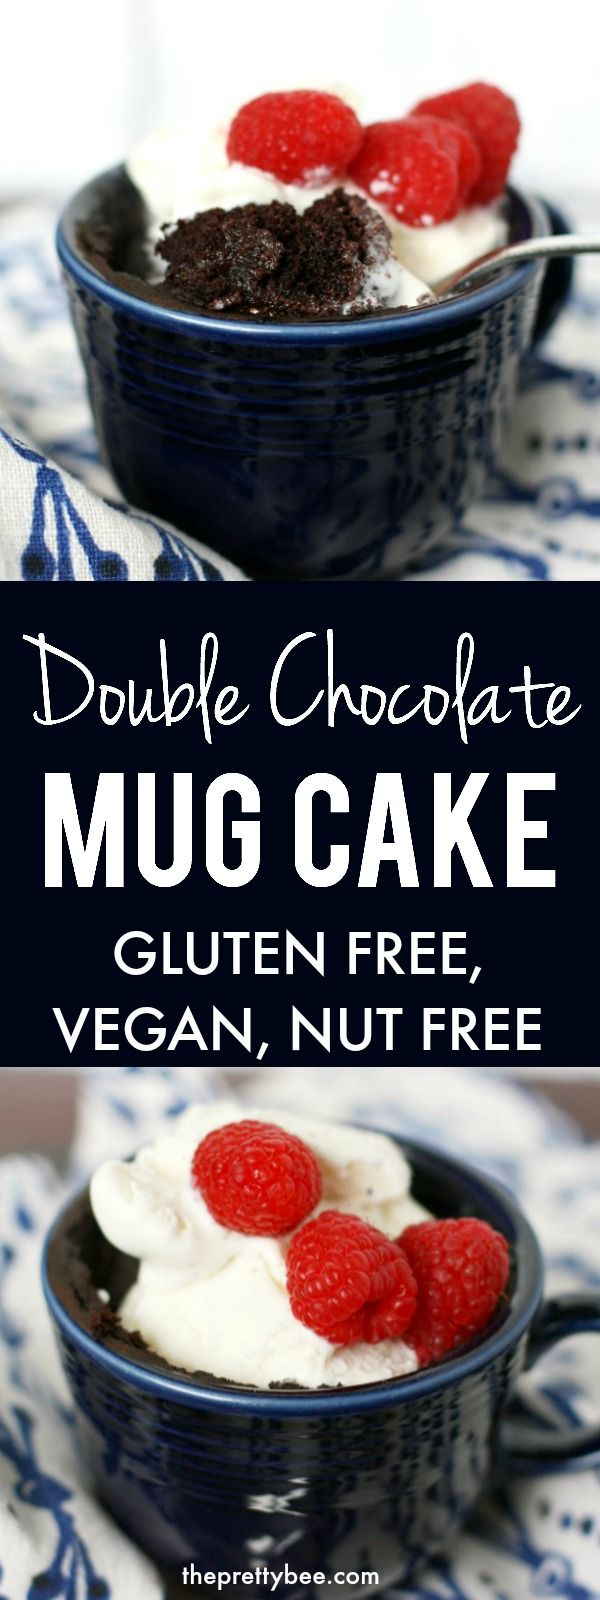 Gluten Free Chocolate Mug Cake (Vegan, Nut Free) This gluten free and vegan chocolate mug cake is just the thing to make after a long day! Treat yourself with this decadent single serving dessert recipe.